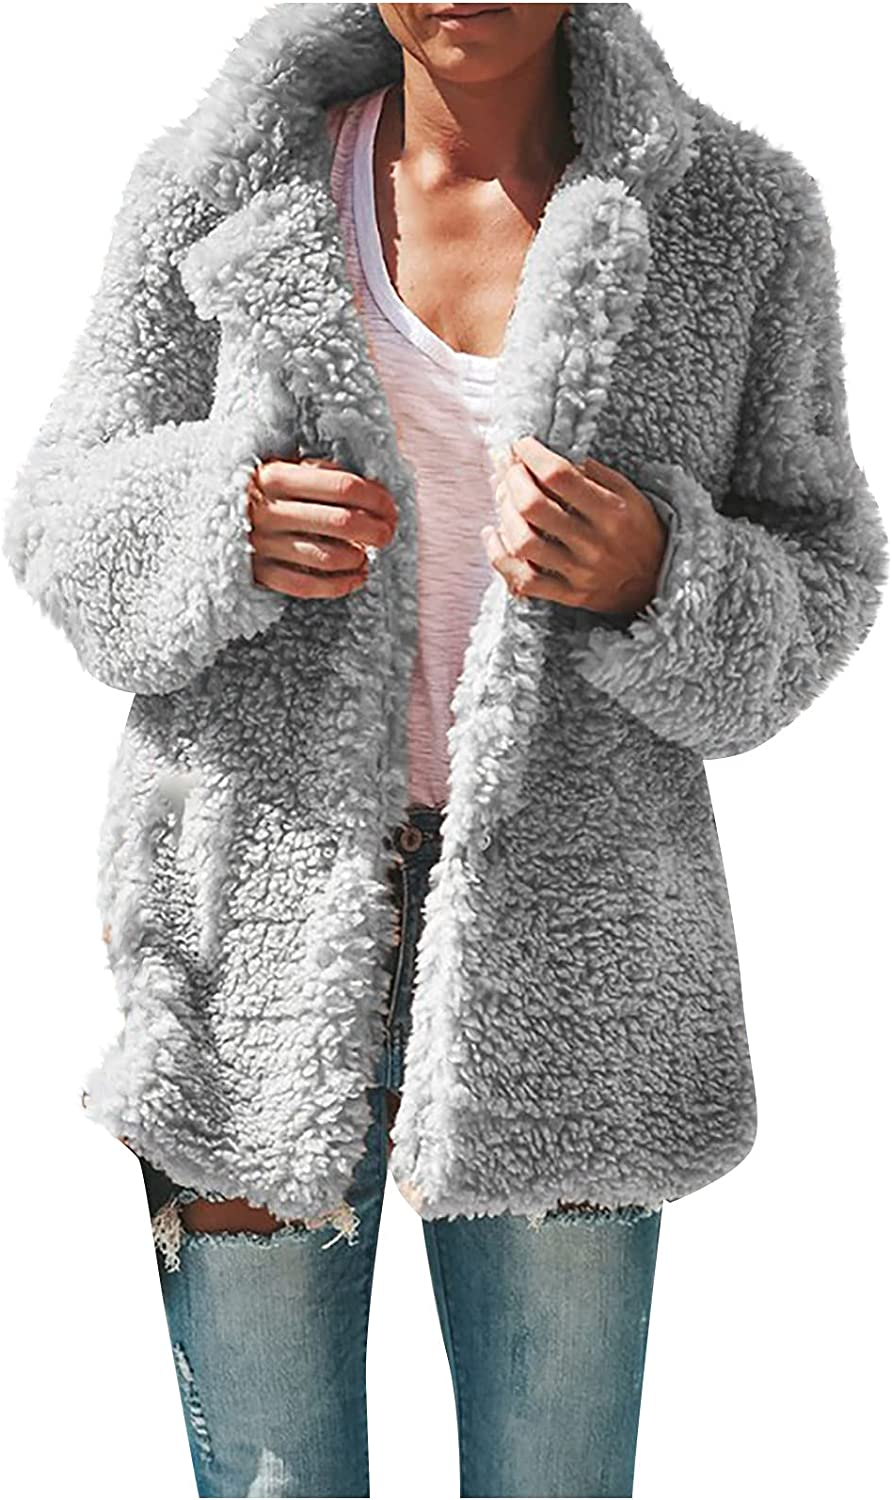 Womens Winter Hooded Fuzzy Faux Coat Casual Plus Size Plush Open Front Cardigan Solid Outdoor Jacket Warm Short Outwear